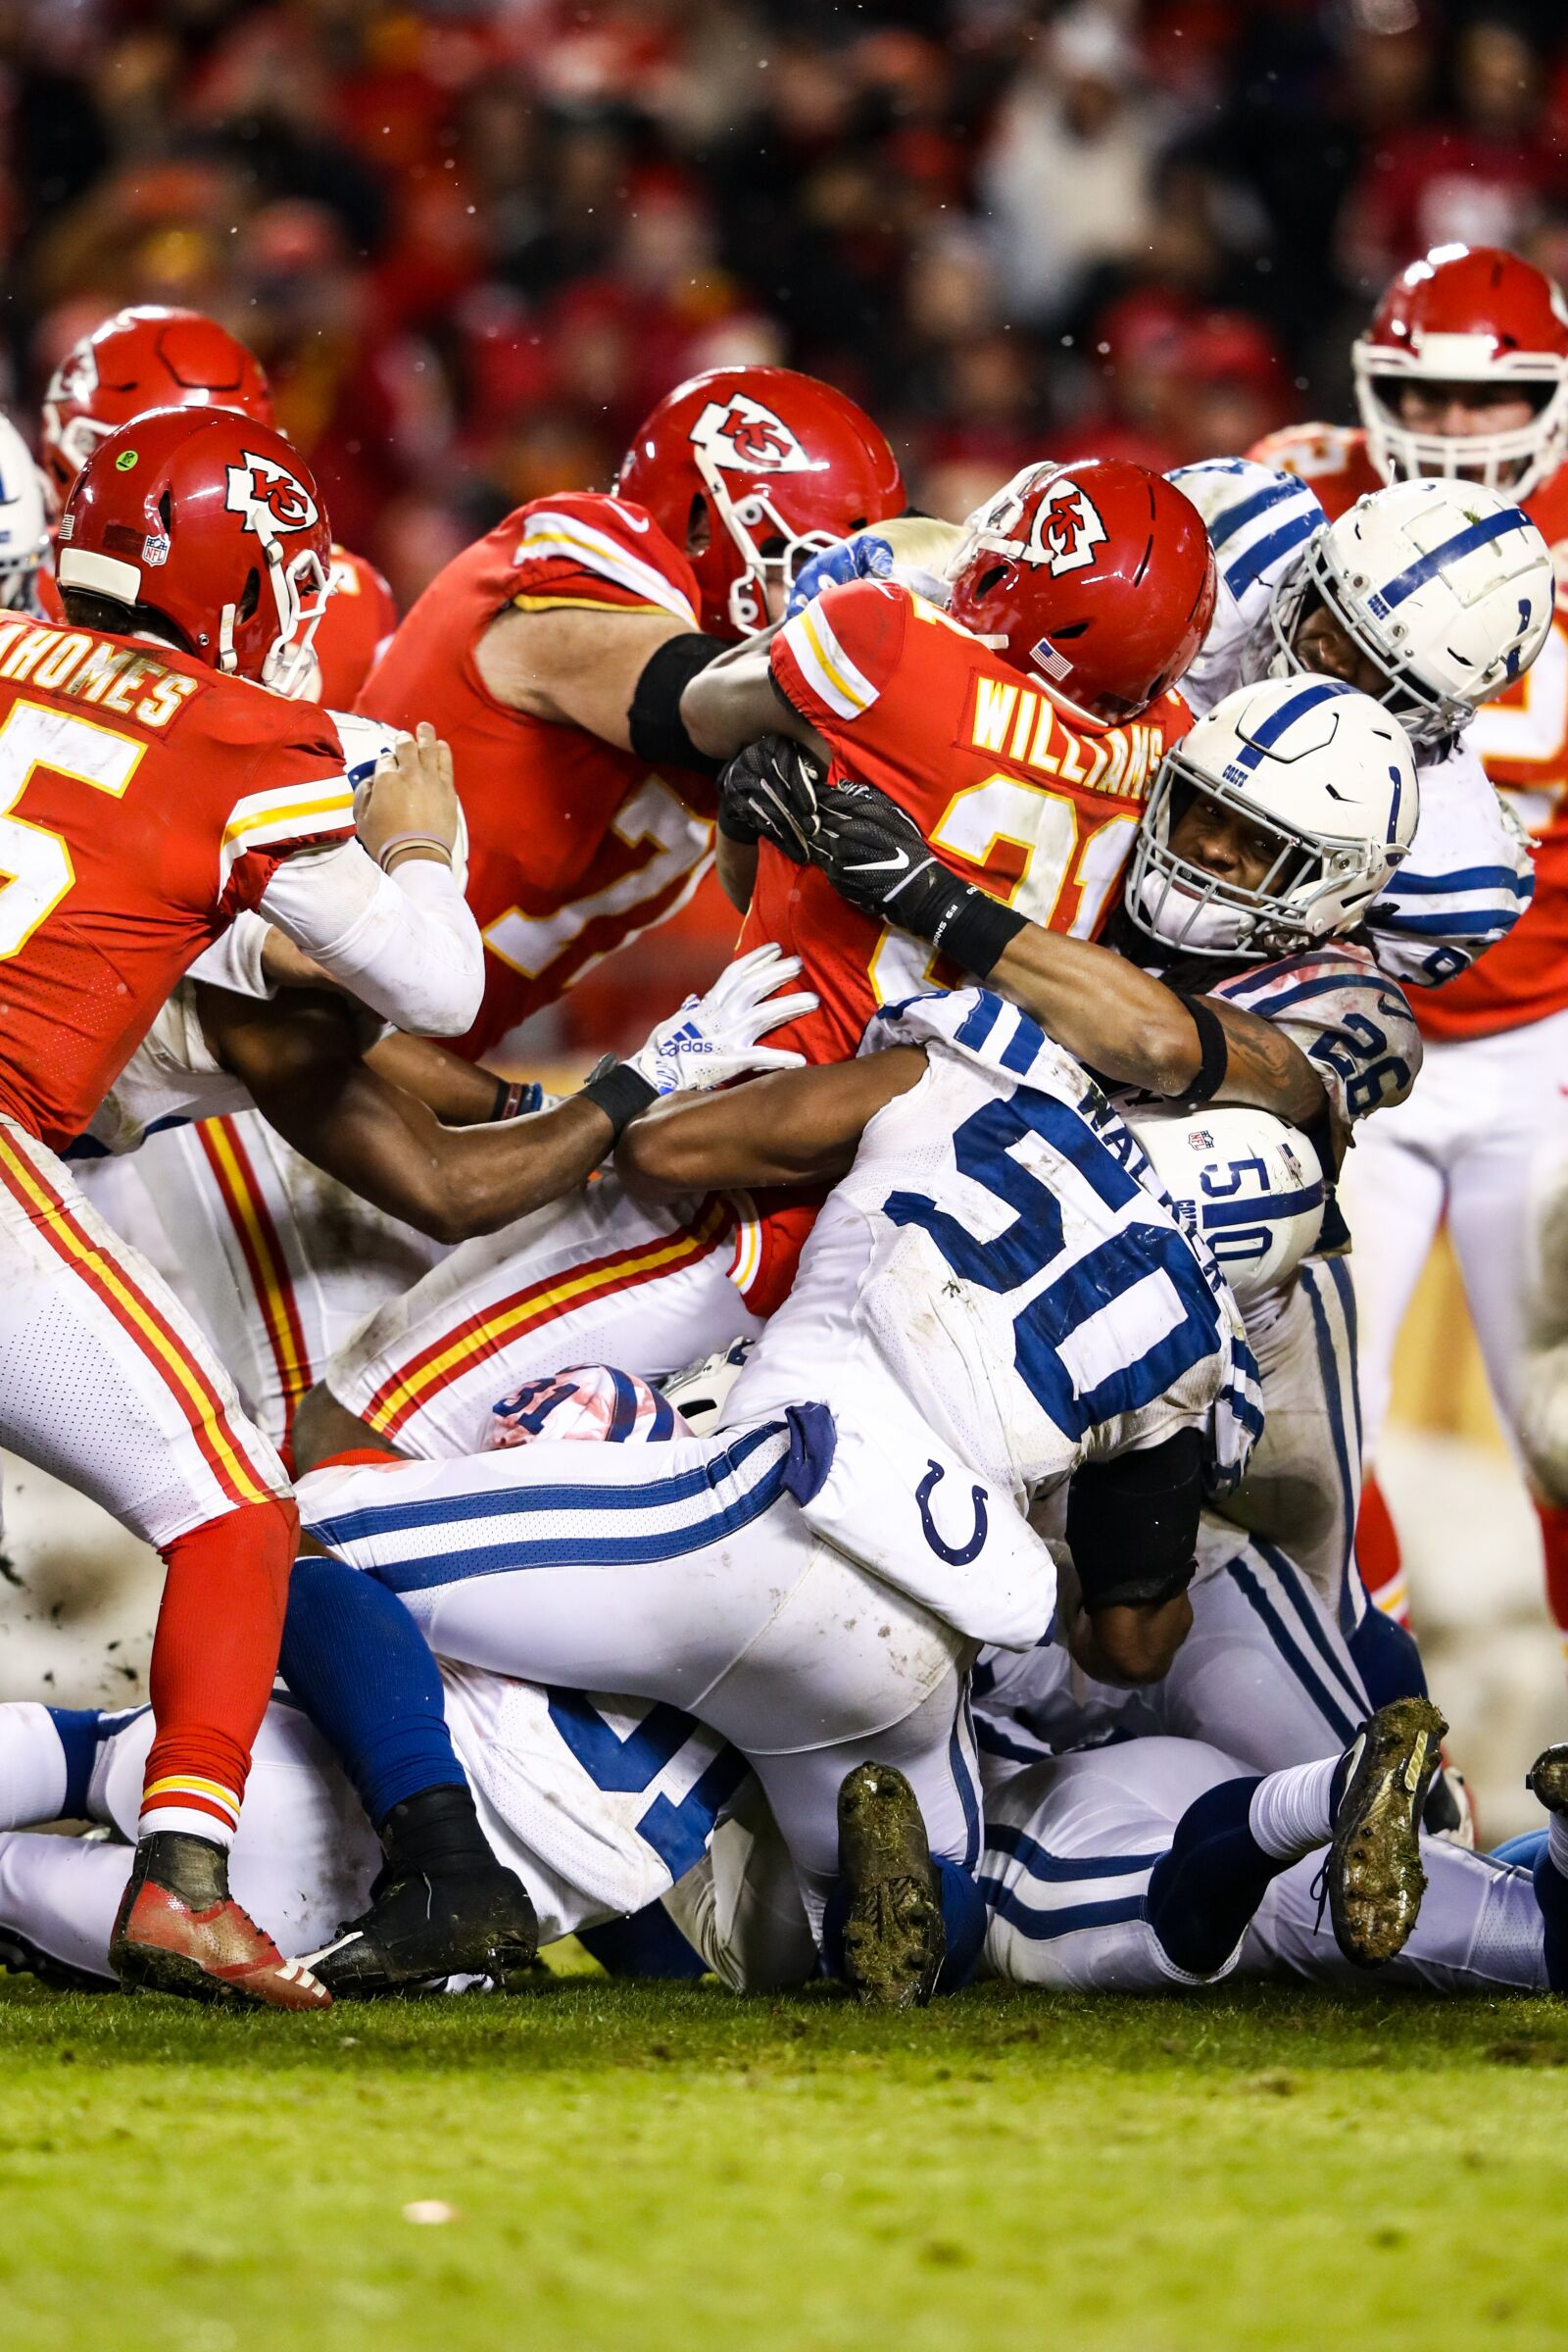 Who is the odd man out on Colts' defense?